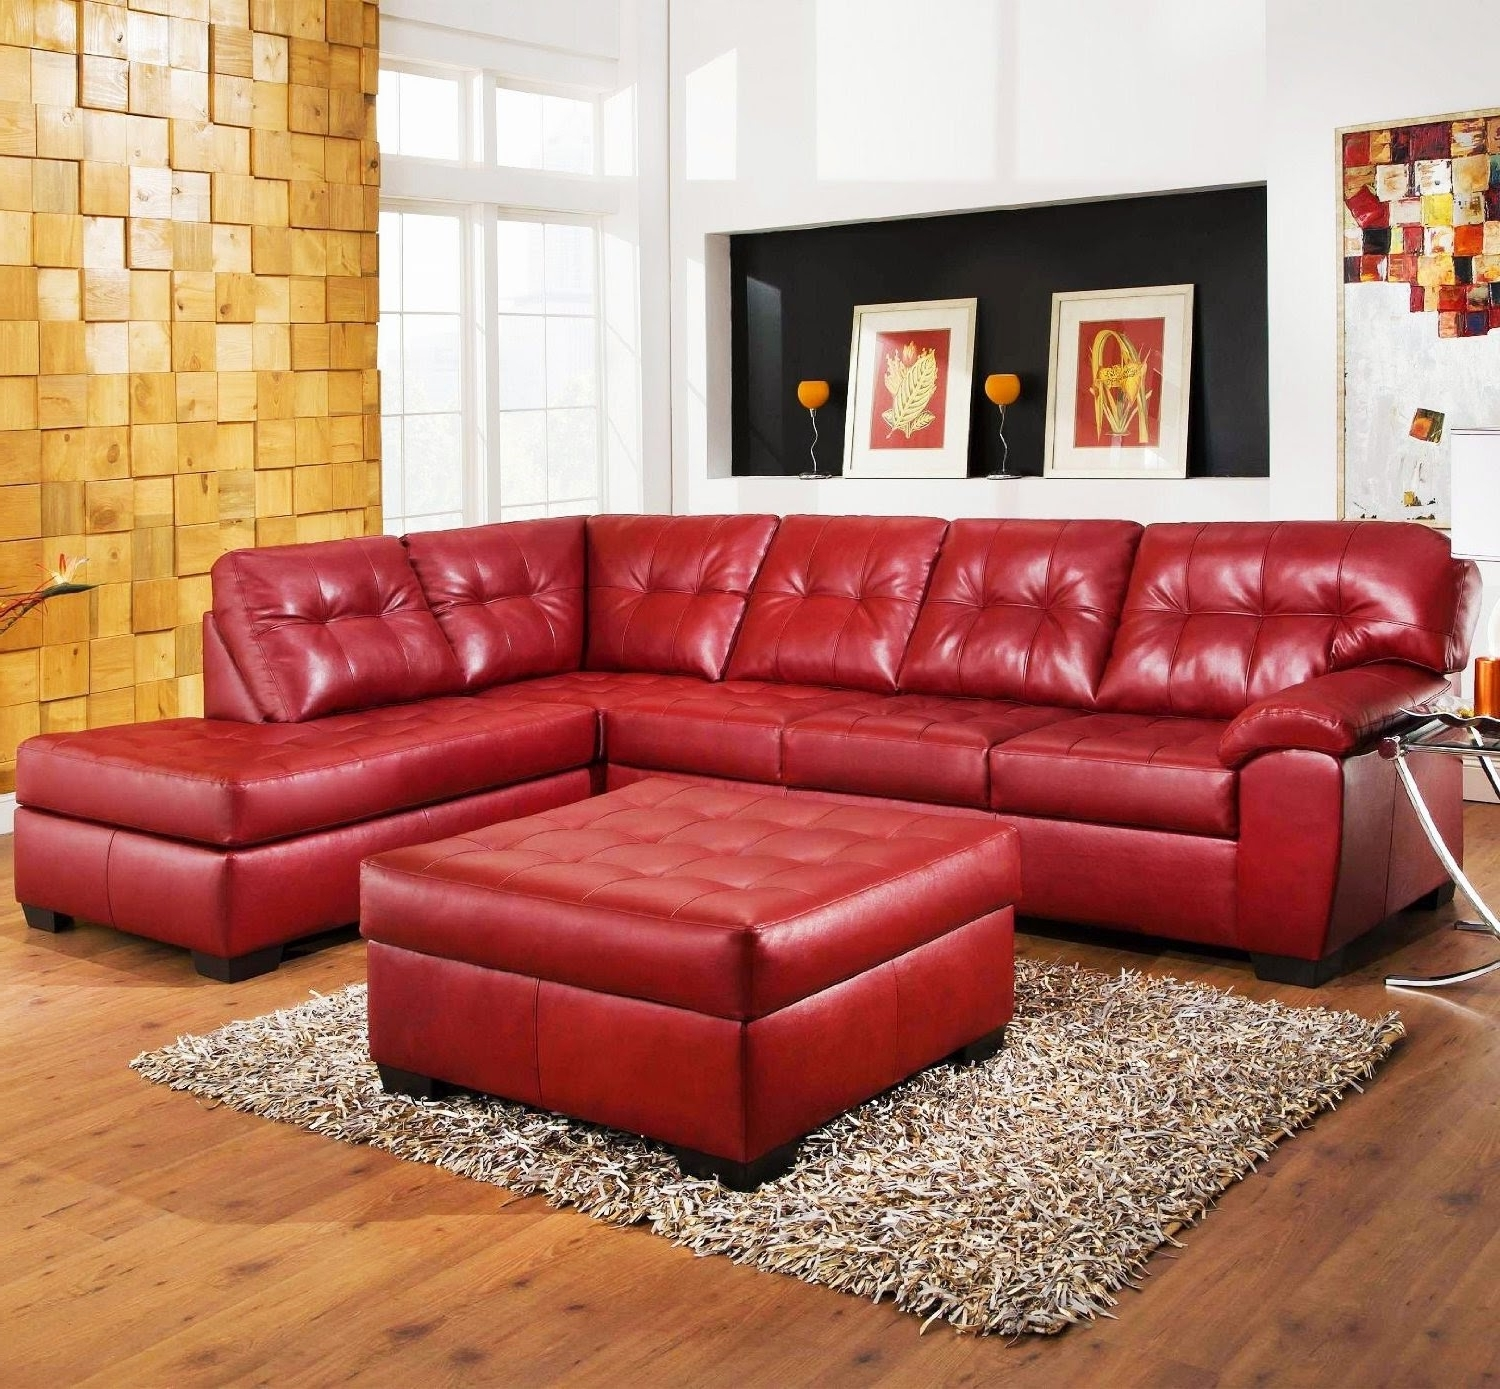 Well Known Astonishing Red Couch Leather Pict Of Sofa Concept And Natuzzi Throughout Red Leather Couches (View 4 of 15)